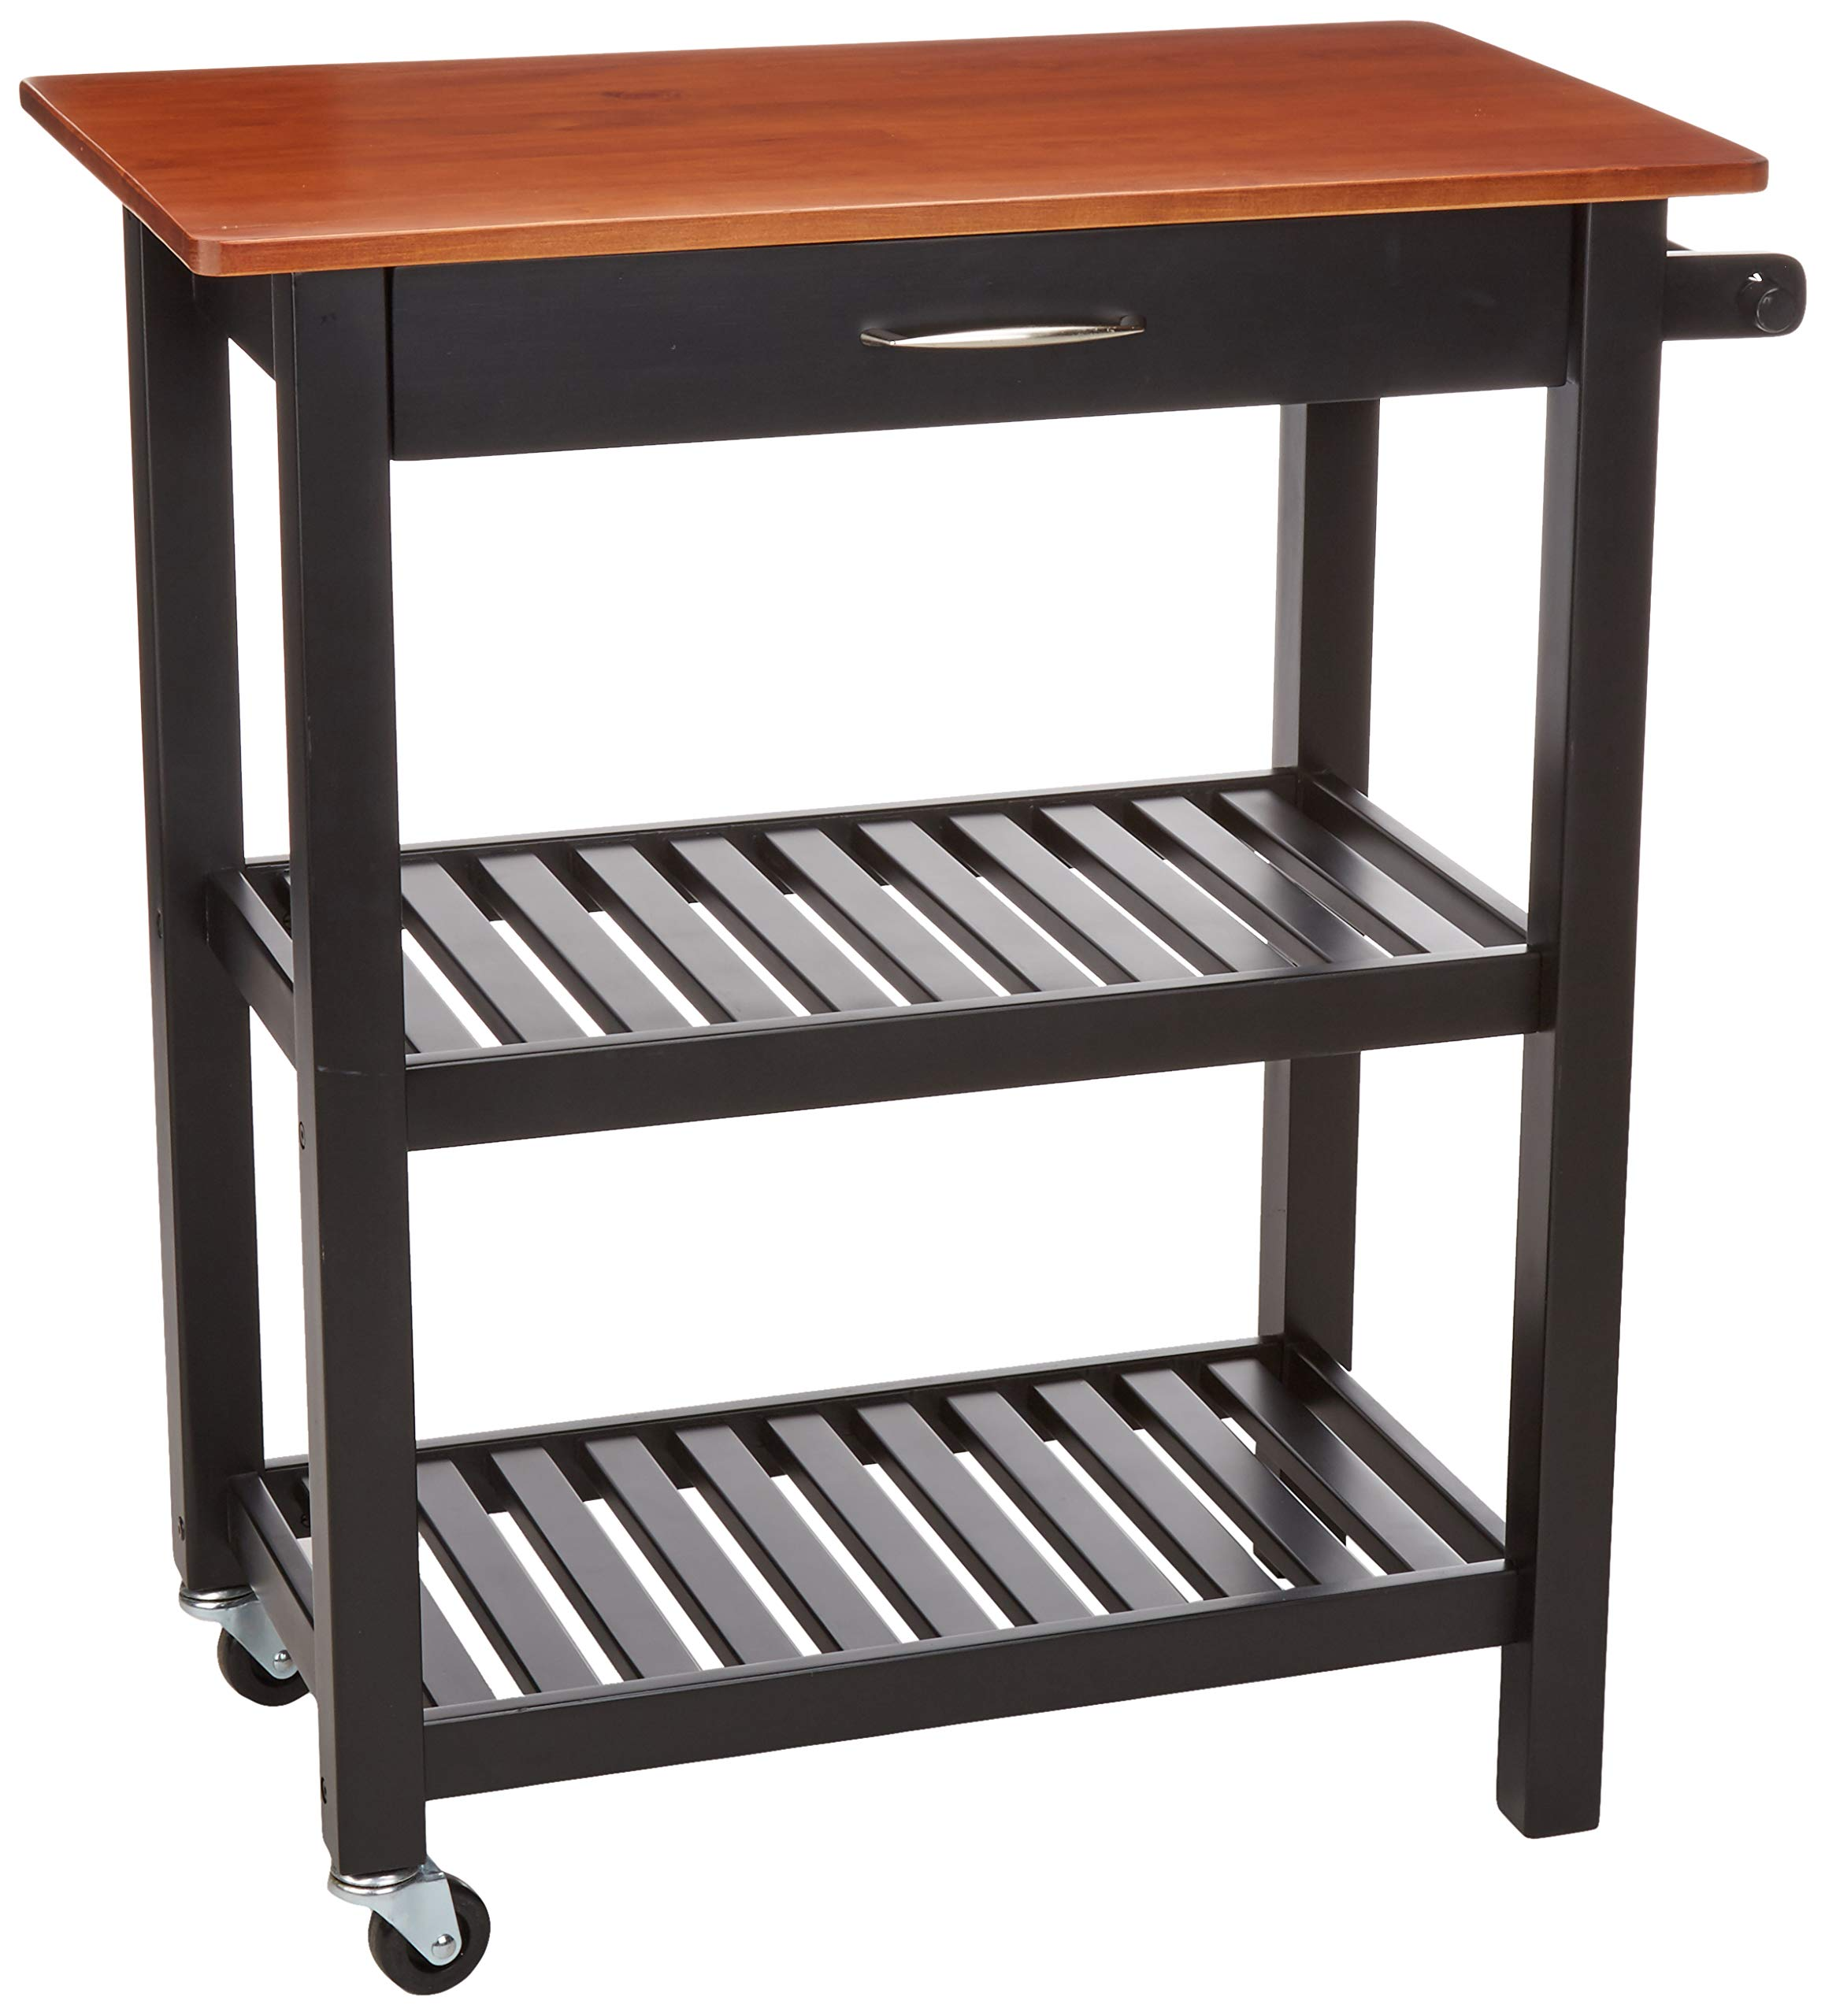 AmazonBasics Multifunction Rolling Kitchen Cart Island with Open Shelves - Cherry and Black